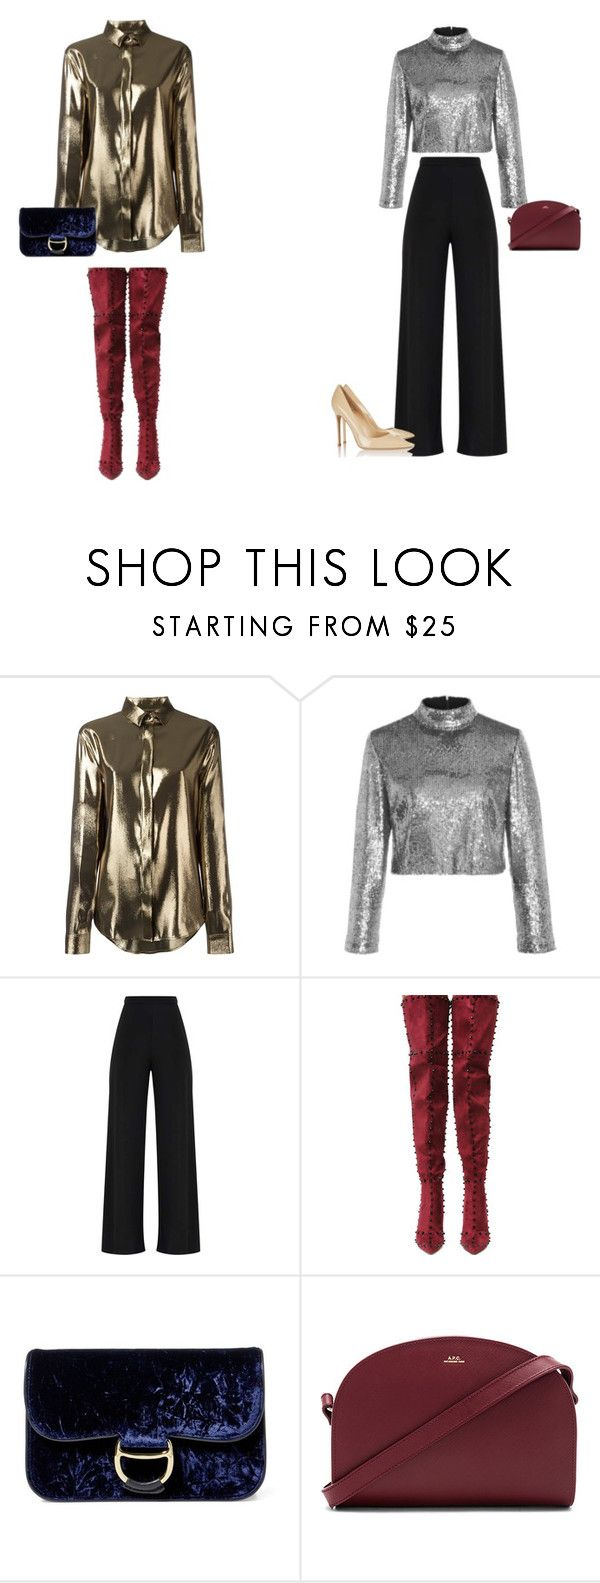 """""""Untitled #6"""" by kocze-eniko on Polyvore featuring Yves Saint Laurent, A.L.C., Cape Robbin, Polo Ralph Lauren, A.P.C. and Gianvito Rossi"""